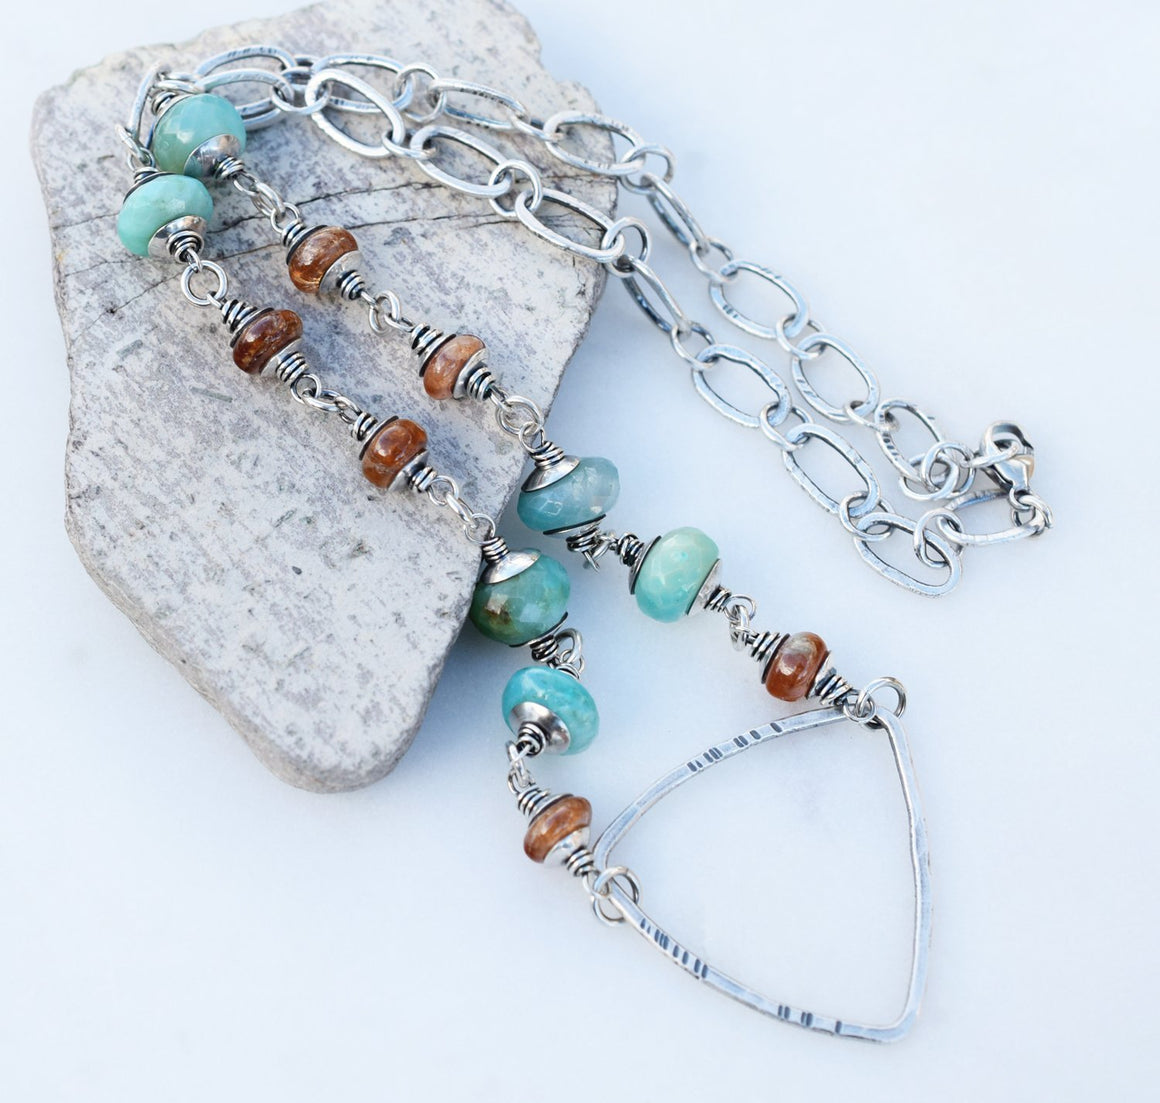 Handmade Sterling Silver Jewelry. Teal + Orange Boho Style Triangle Necklace.